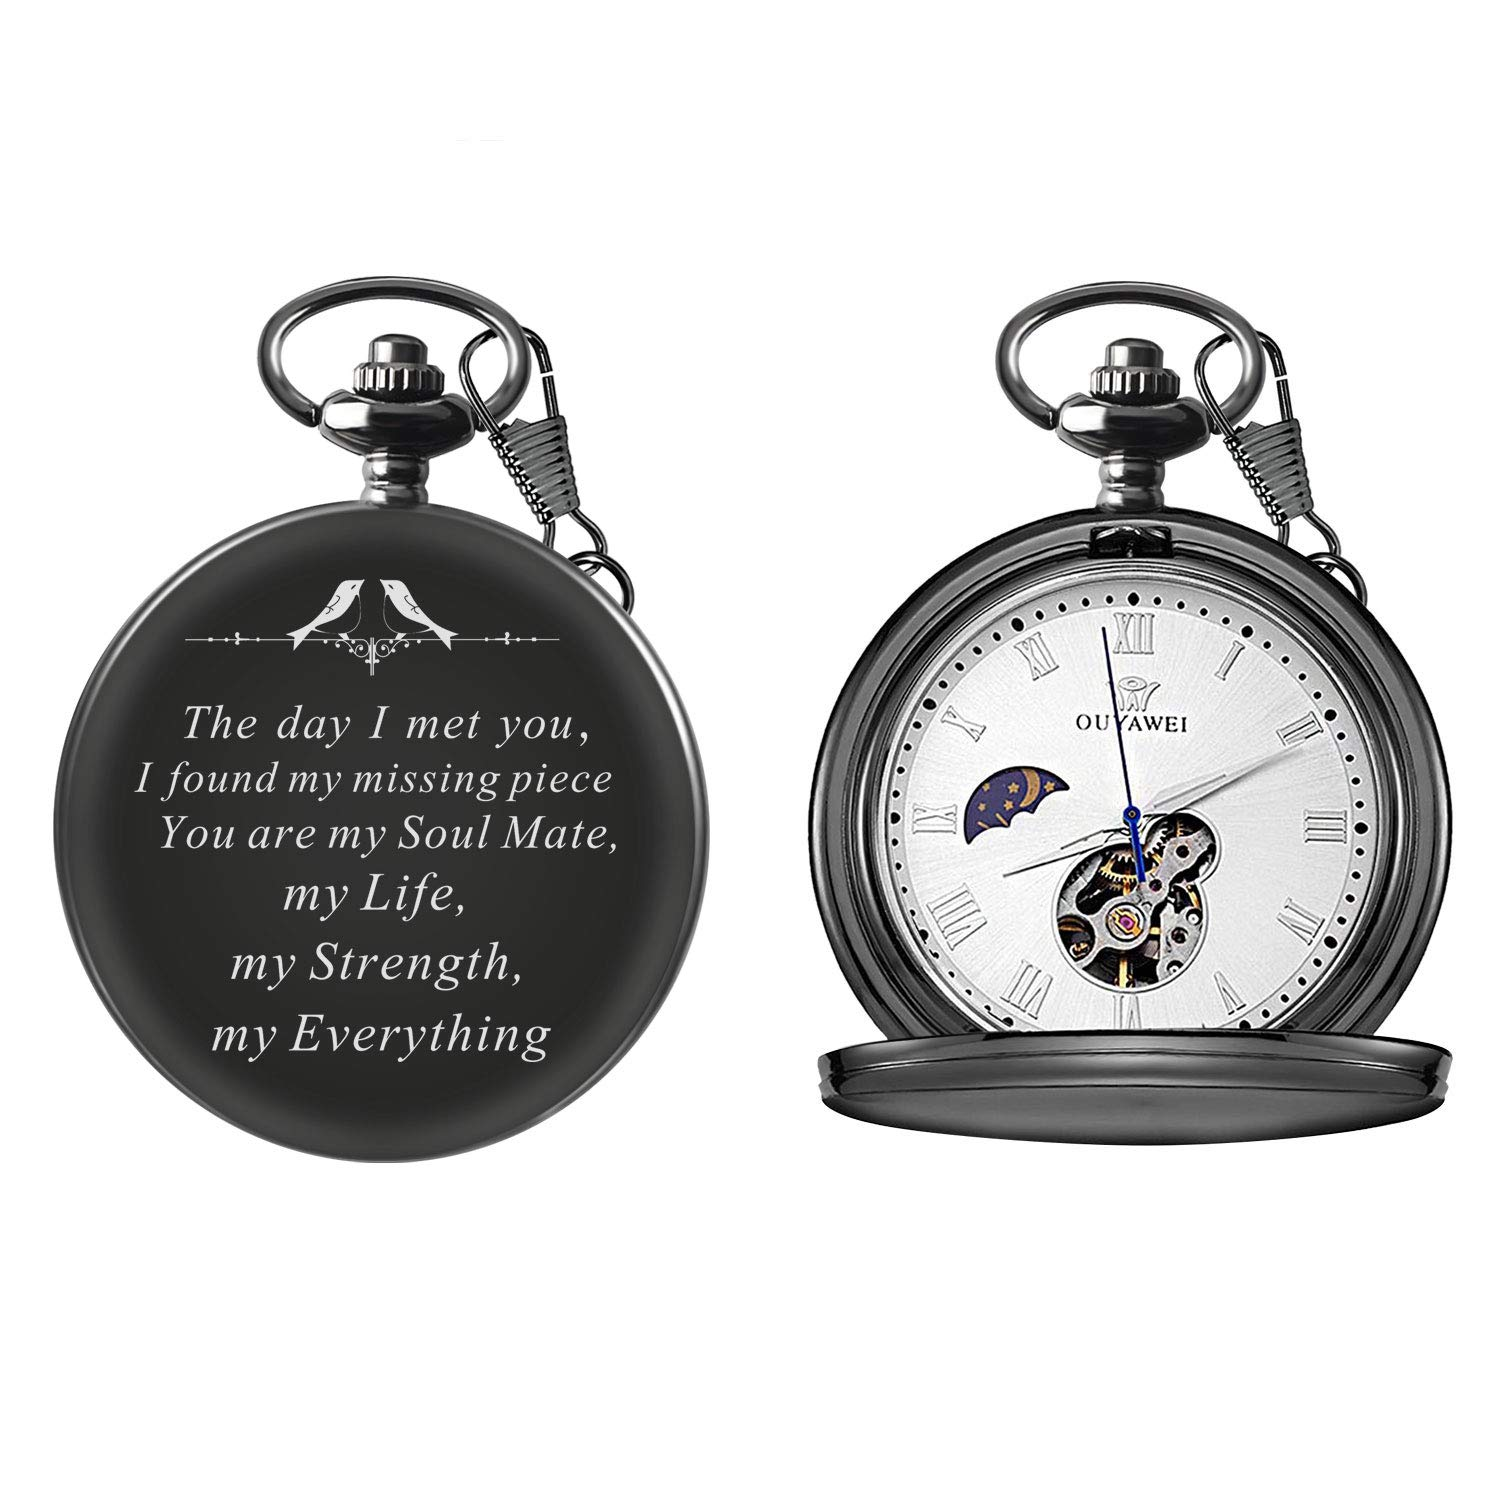 Mens Engraved Gifts for Valentine's Day, Anniversary Birthday Graduation Christmas Personalized Mechanical Pocket Watch with Gift Box (The Day I met You) by Ginasy (Image #2)